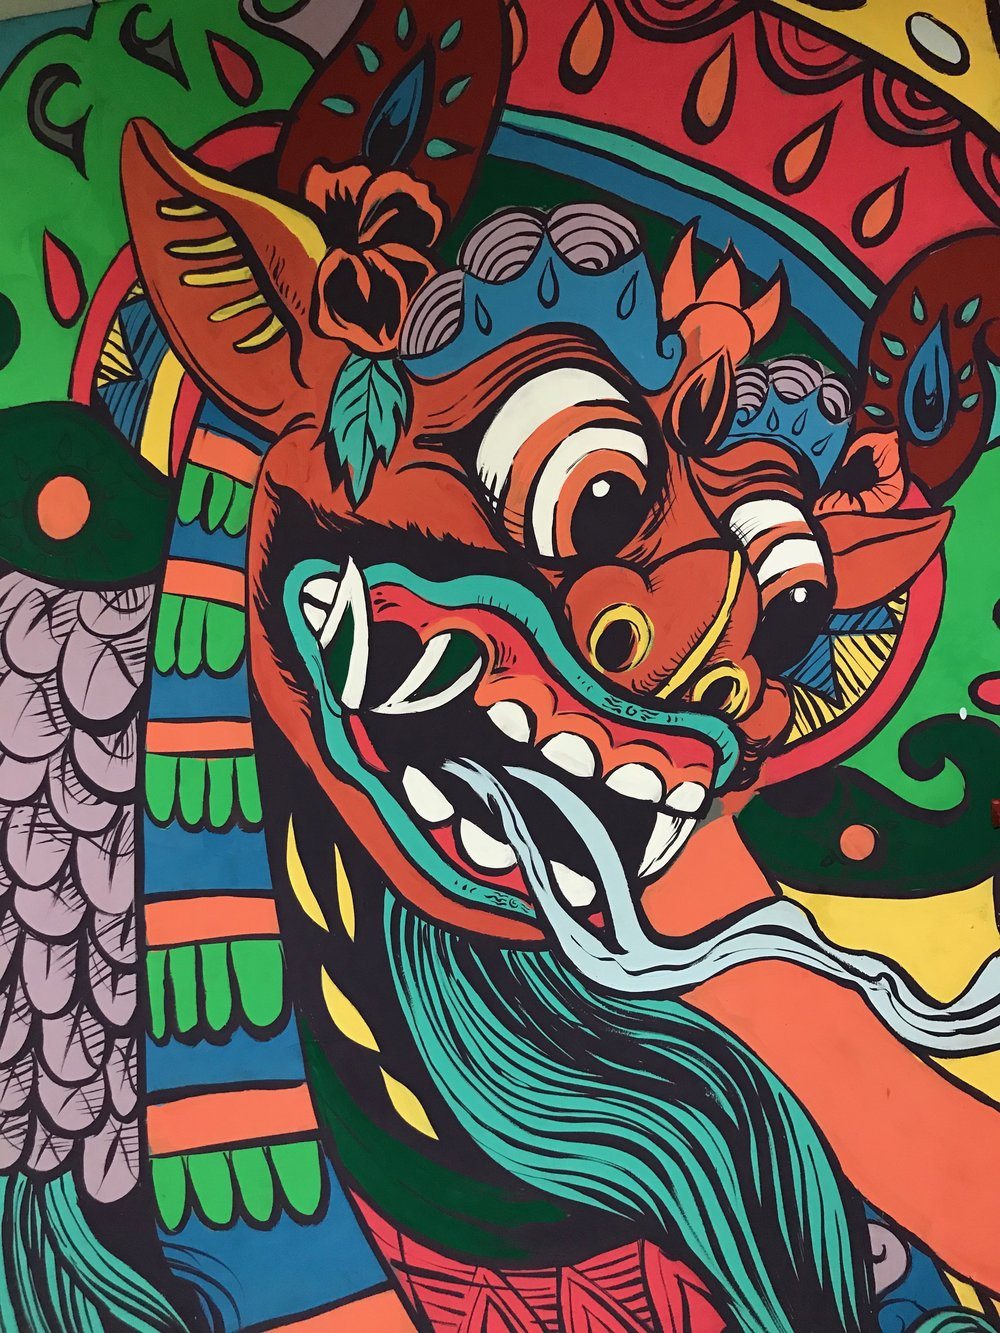 Barong bids visitors farewell in this mural at the Denpasar airport